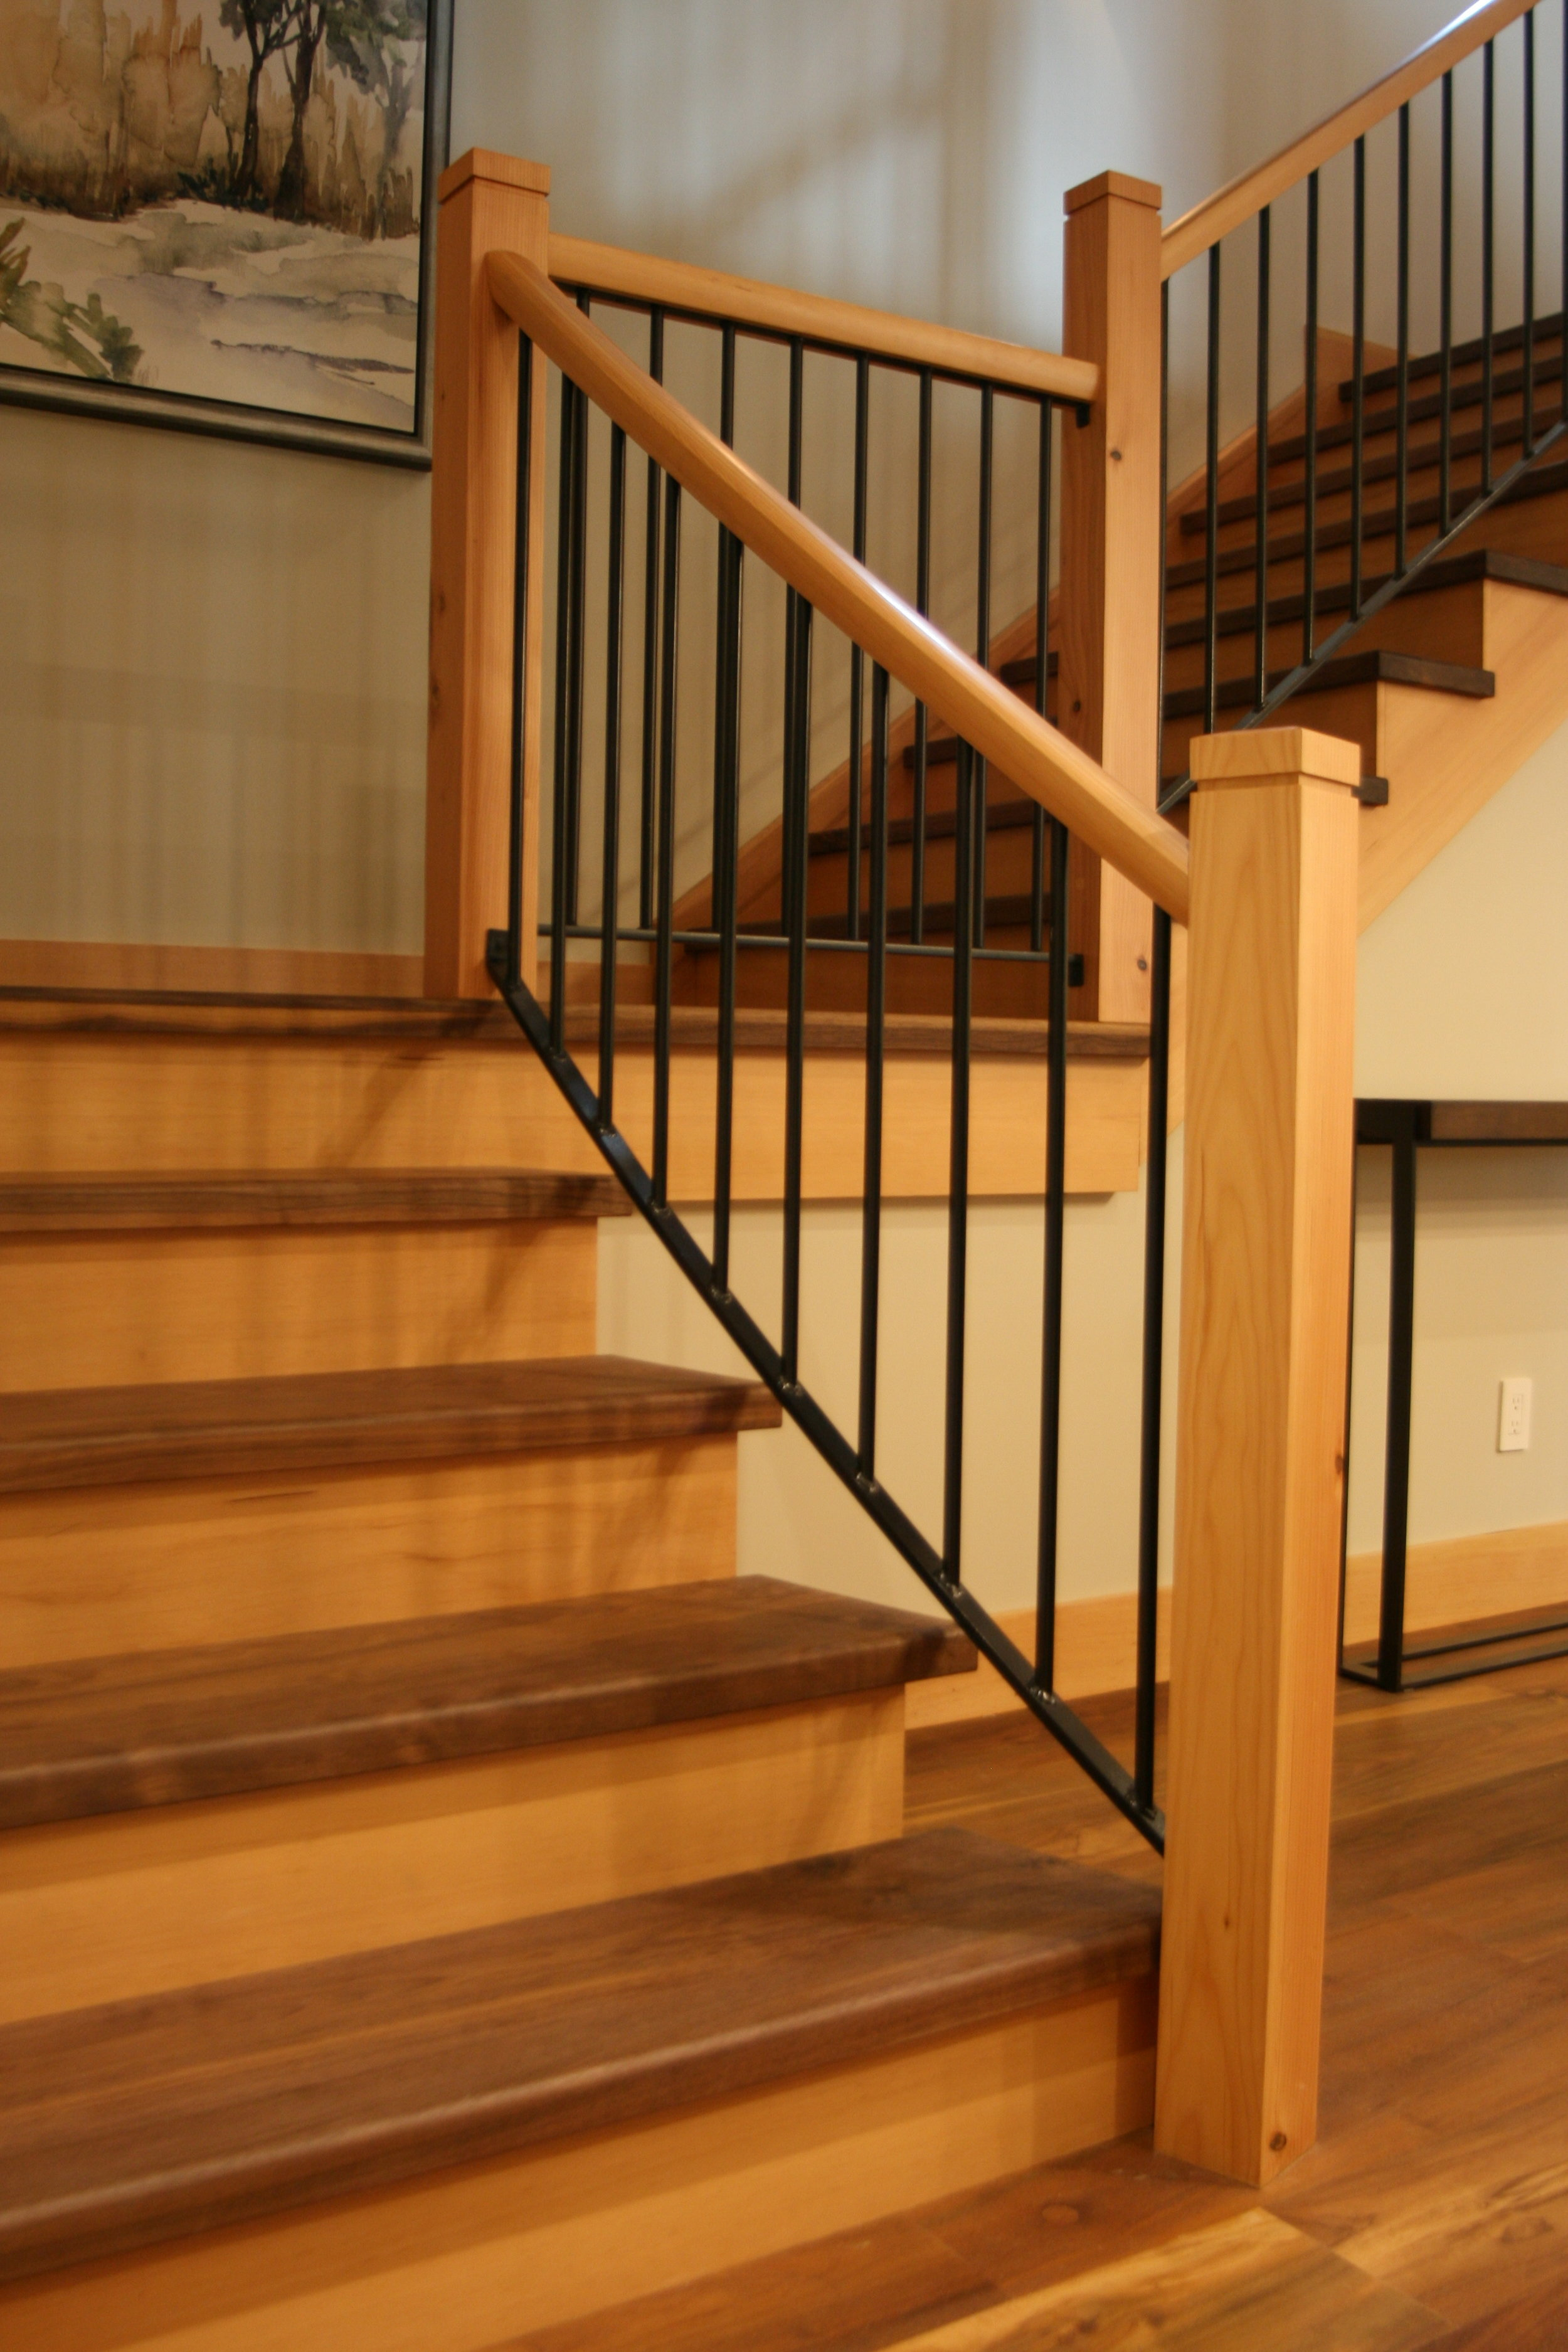 Stairs have Walnut treads, custom metal stringers, Douglas Fir newels and hand rail